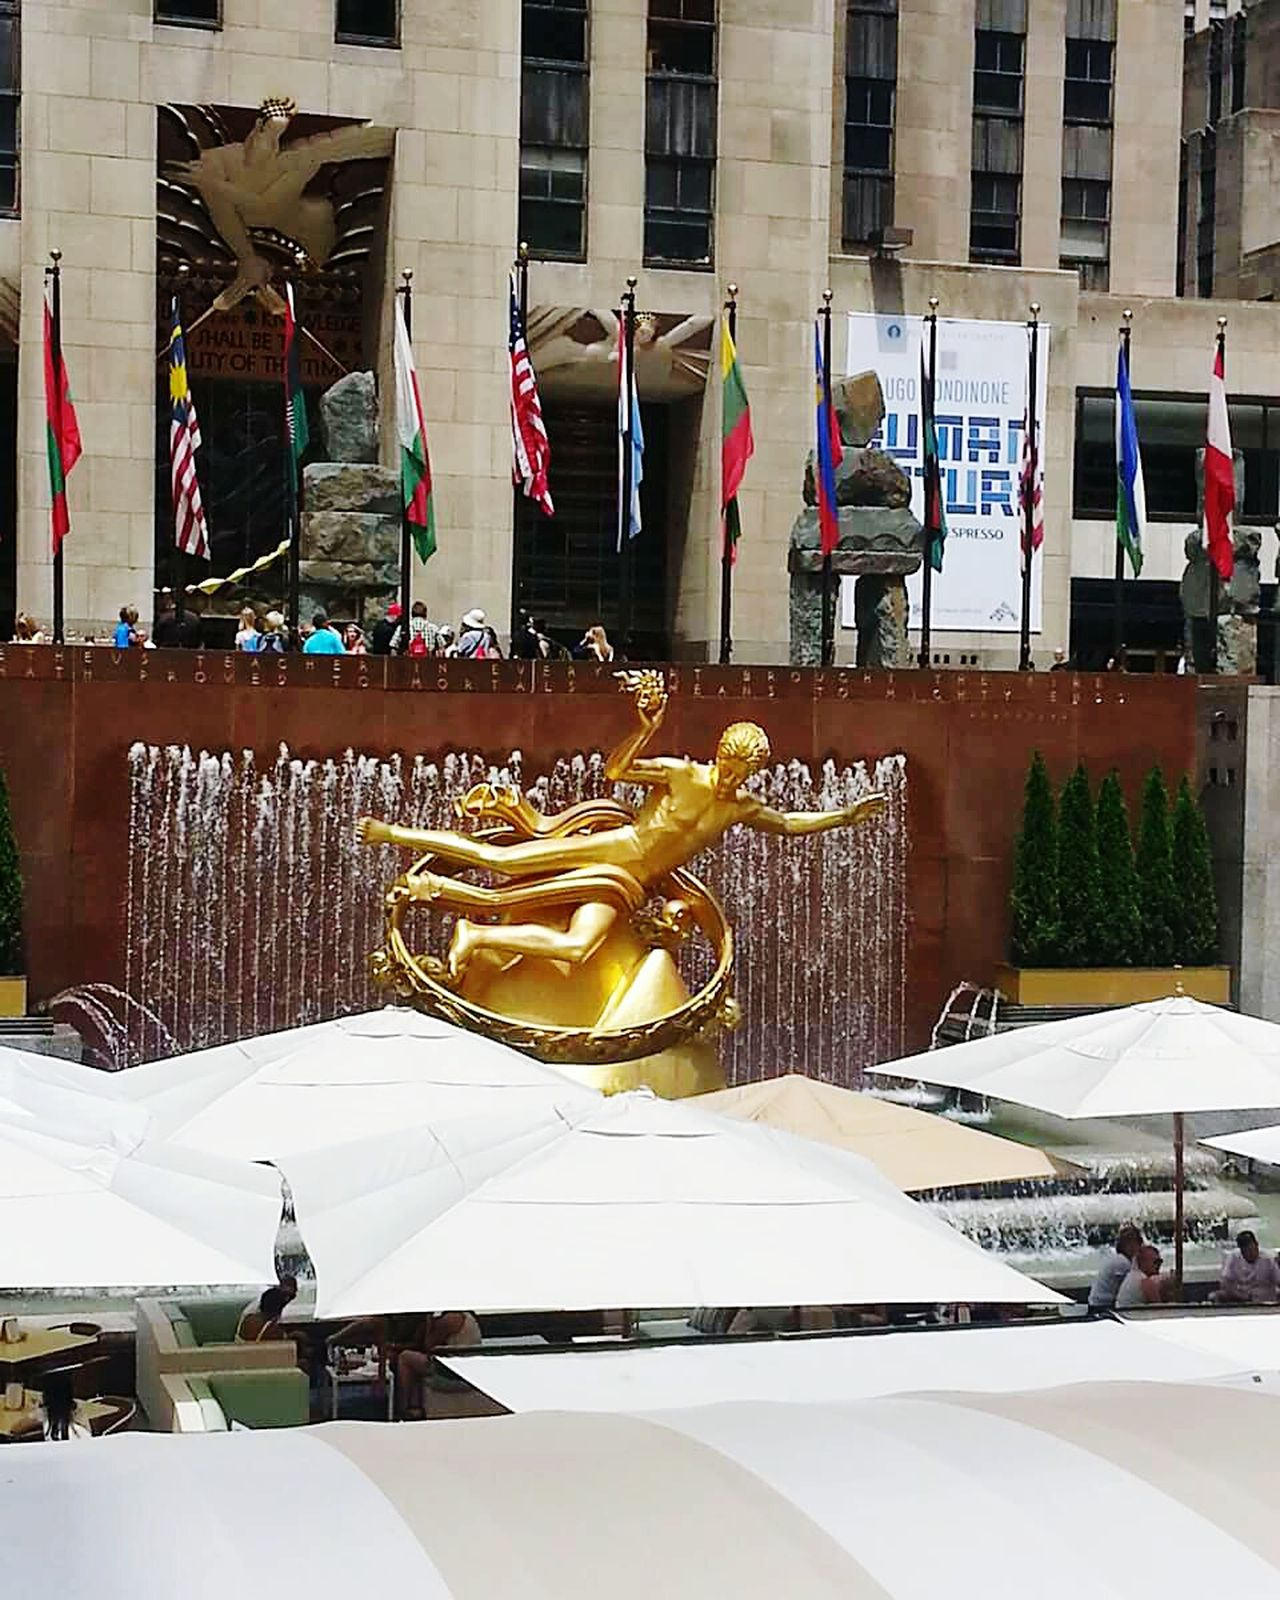 Travel Destinations Architecture Outdoors Love❤ Living Life To The Fullest❤ NYC LIFE ♥ Livethemoment Love Life Live, Love, Laugh Rockefeller Center, New York NYC Street Photography Rockefellercentre Livetotravel Rockefeller Rockefeller Center With Internationl Flags, New York, US Loveit Travelingtheworld  Life Is Beautiful Loving Life! Live Love Life Living In The Moment Travelling Photography Lovetravelingtheworld